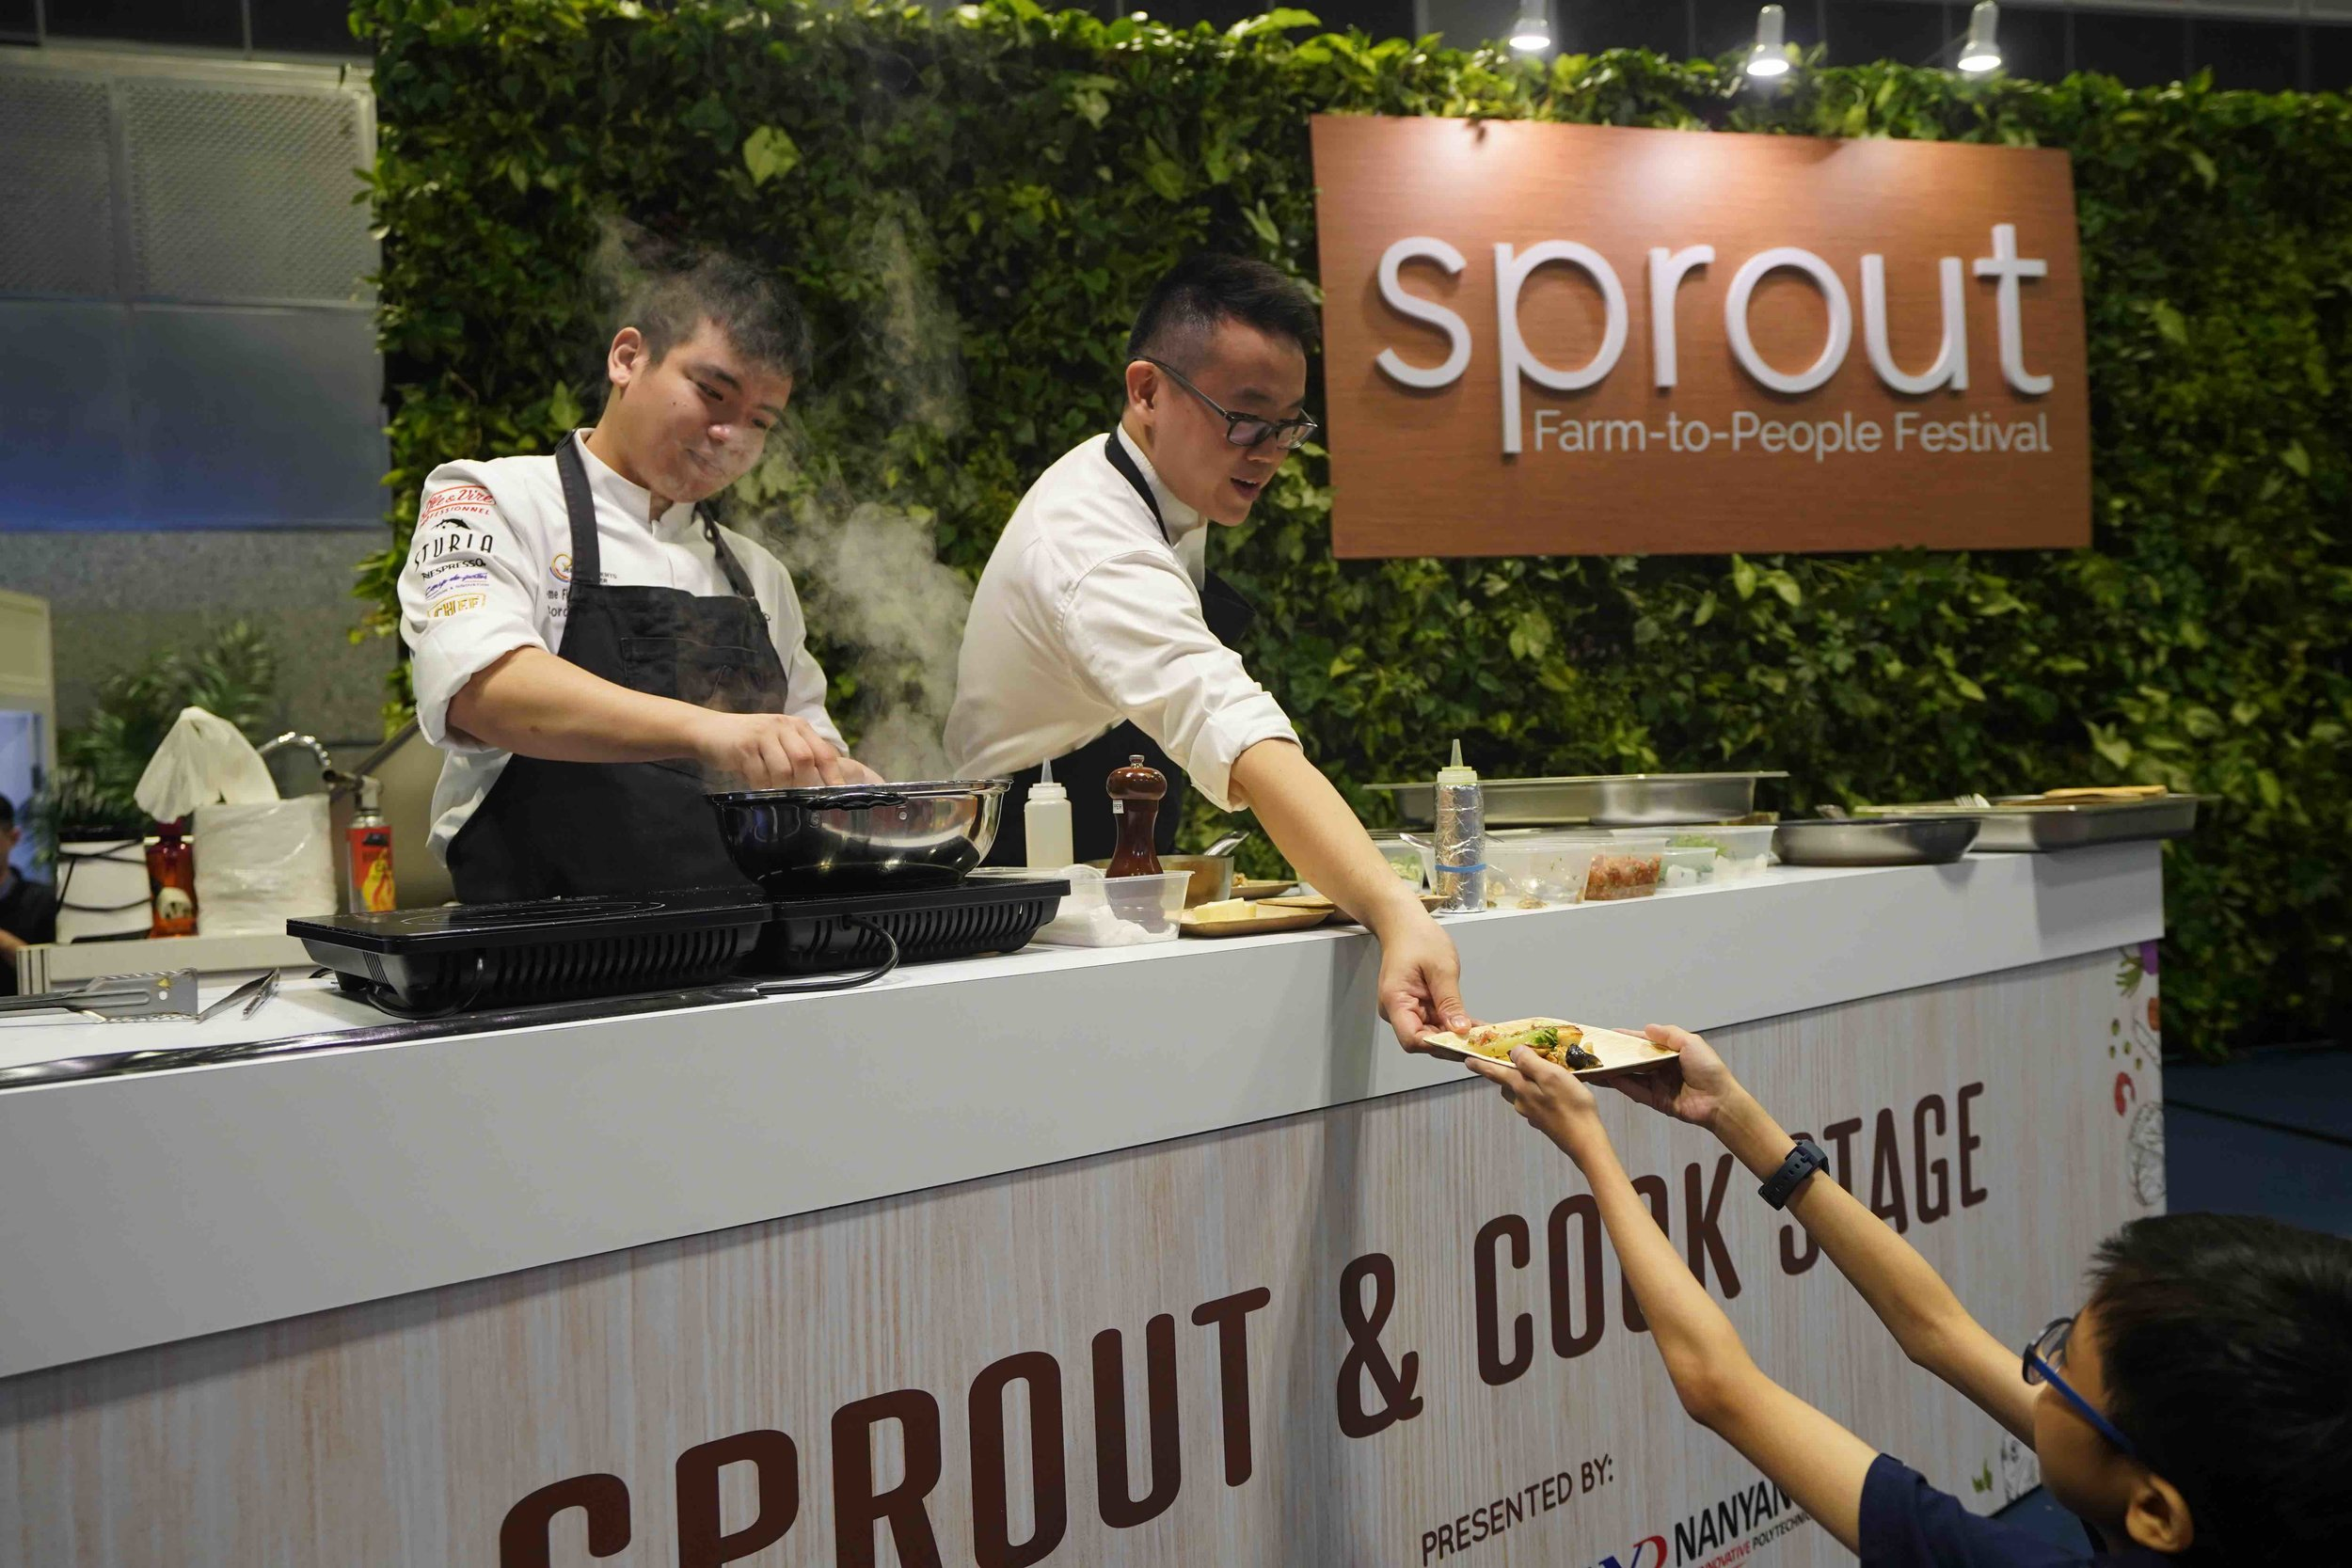 Sprout Singapore - Sprout & Cook.jpg